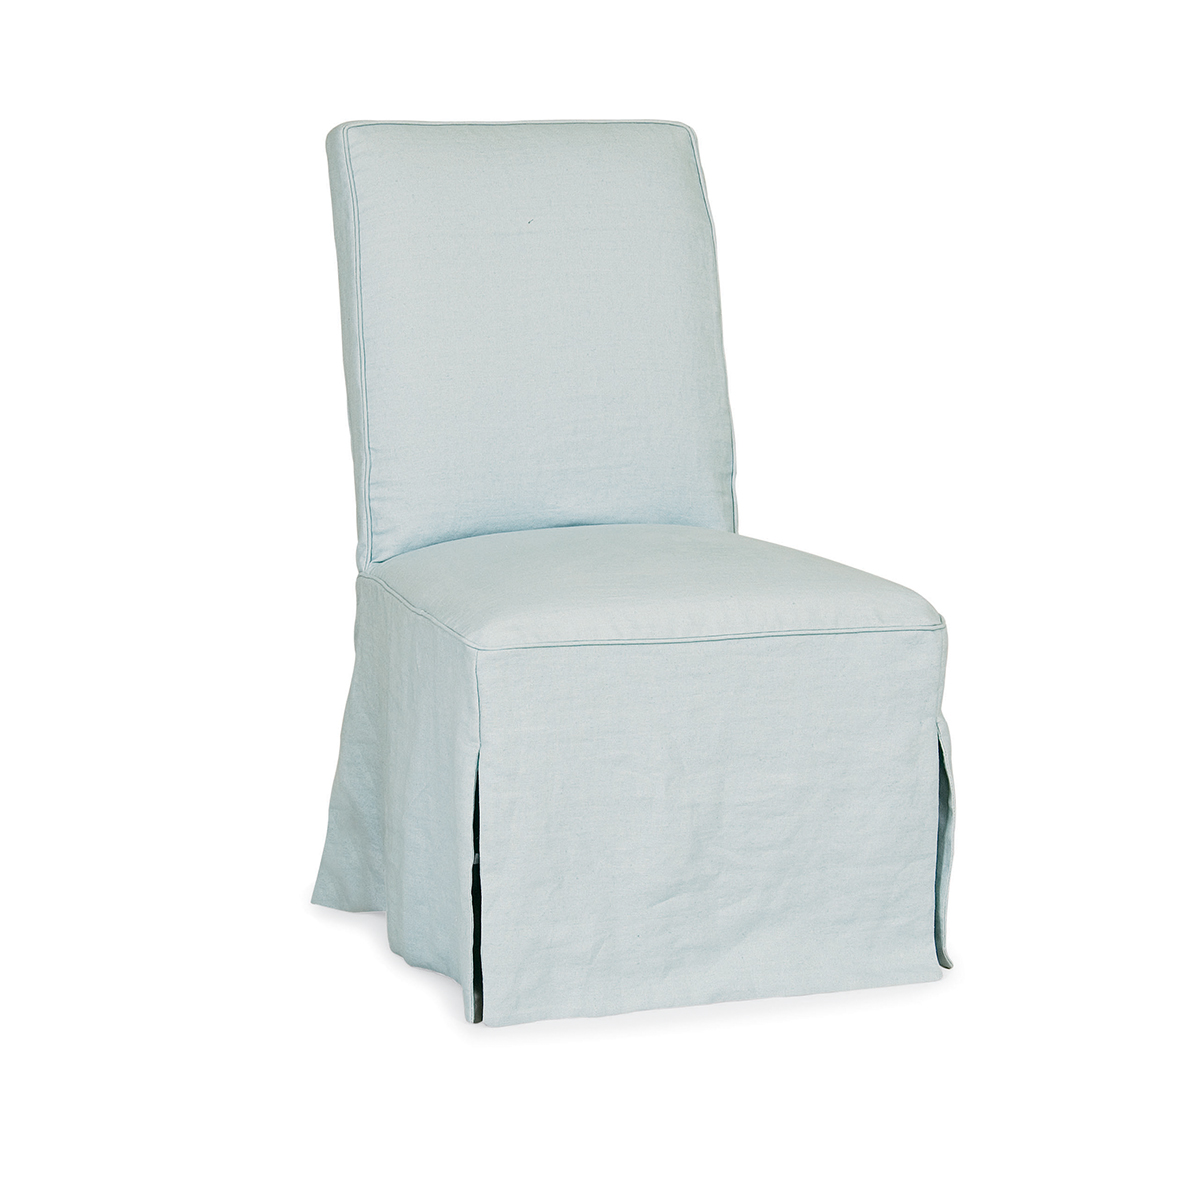 Slipcovered_Hostess_chair_C5567-41_Lee_Industries.jpg